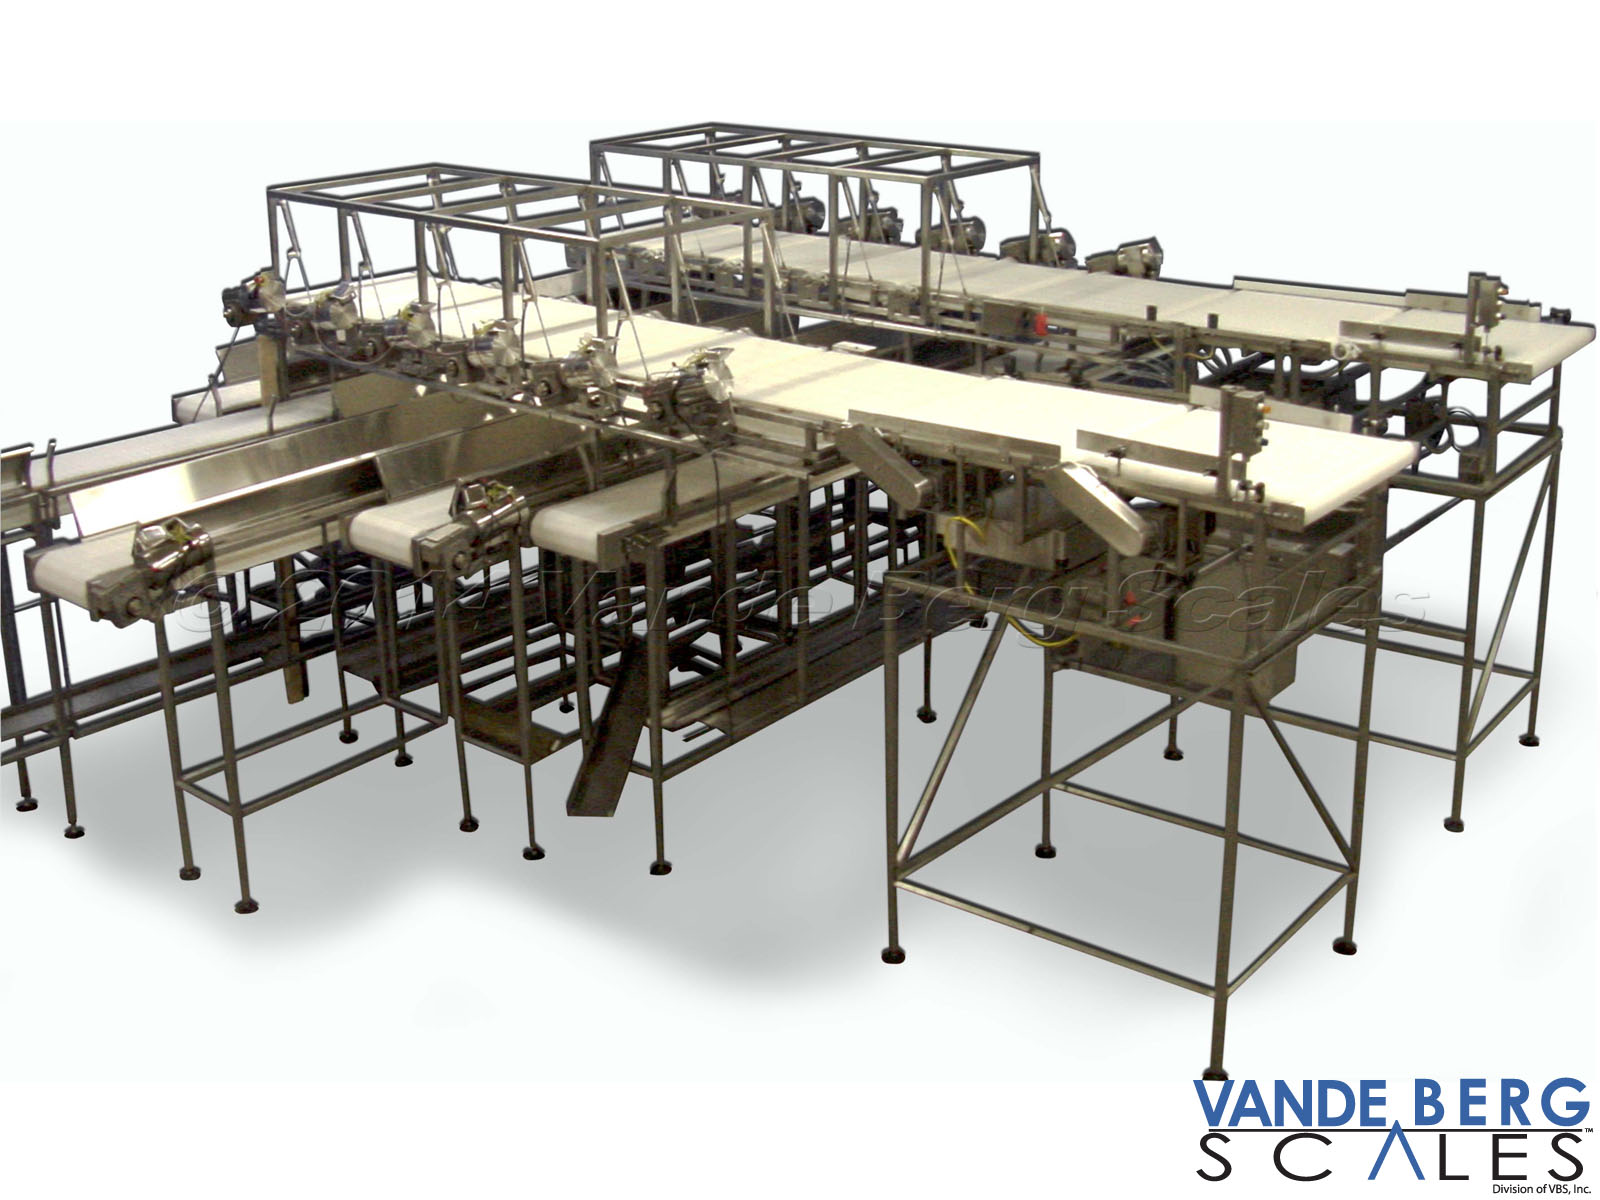 Dual Lane Loin Sortation System - Product is dropped onto the crossover conveyors which carry product to combos or other parts of the plant for further processing.